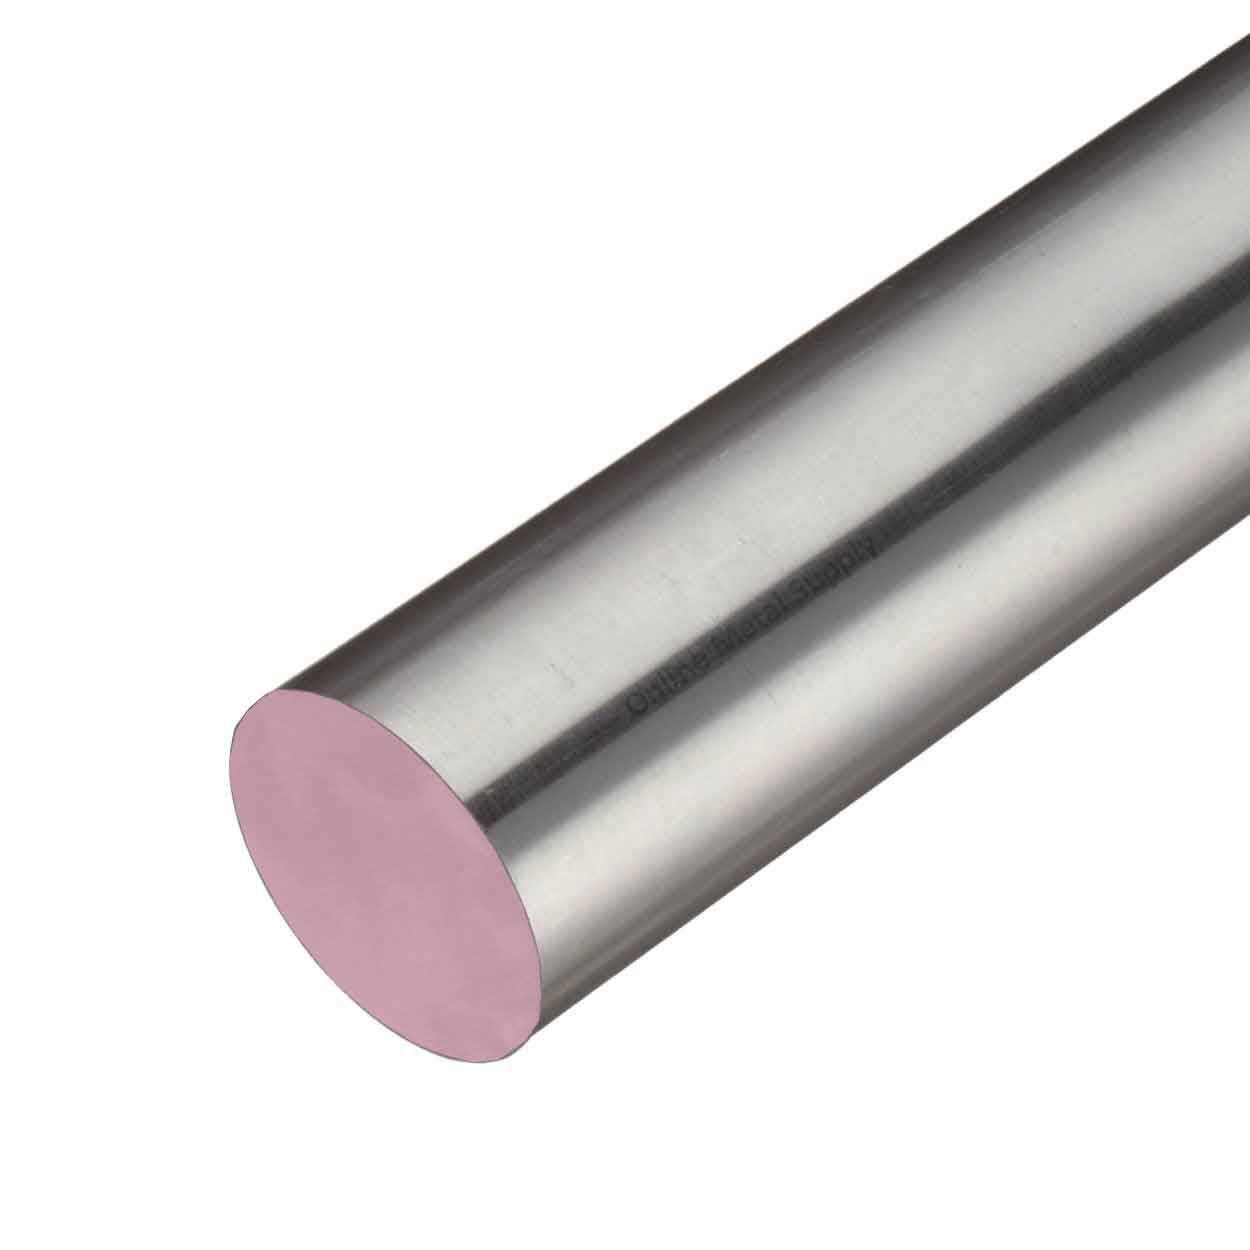 Online Metal Supply 303 Stainless Steel Round Rod, 0.500 (1/2 inch) x 36 inches by Online Metal Supply